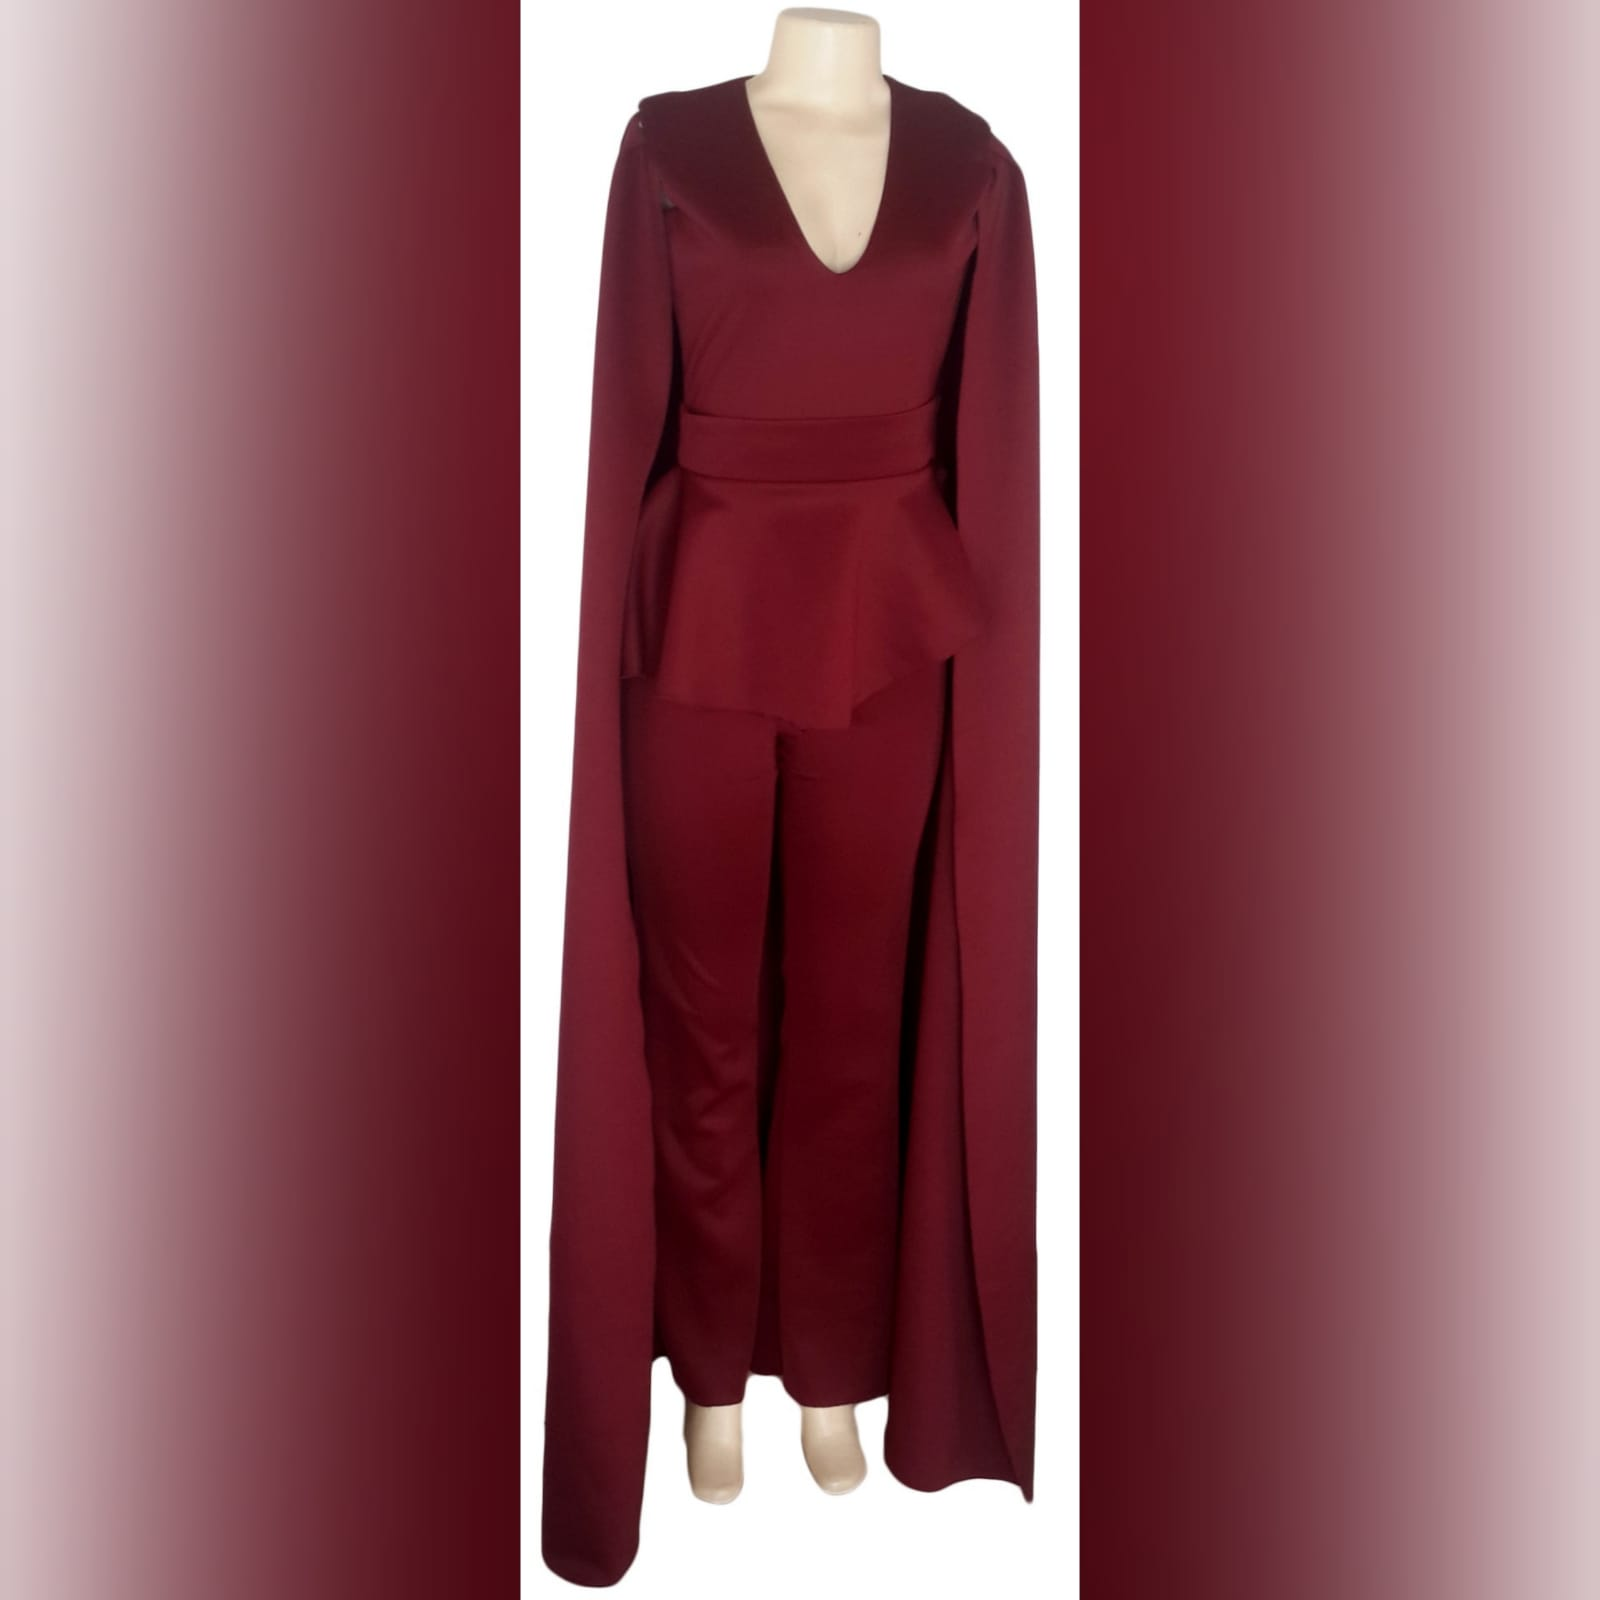 3 piece burgundy evening outfit 4 3 piece burgundy evening outfit. Bodysuit with a v neckline, with a removable peplum belt. With a removable shoulder cape